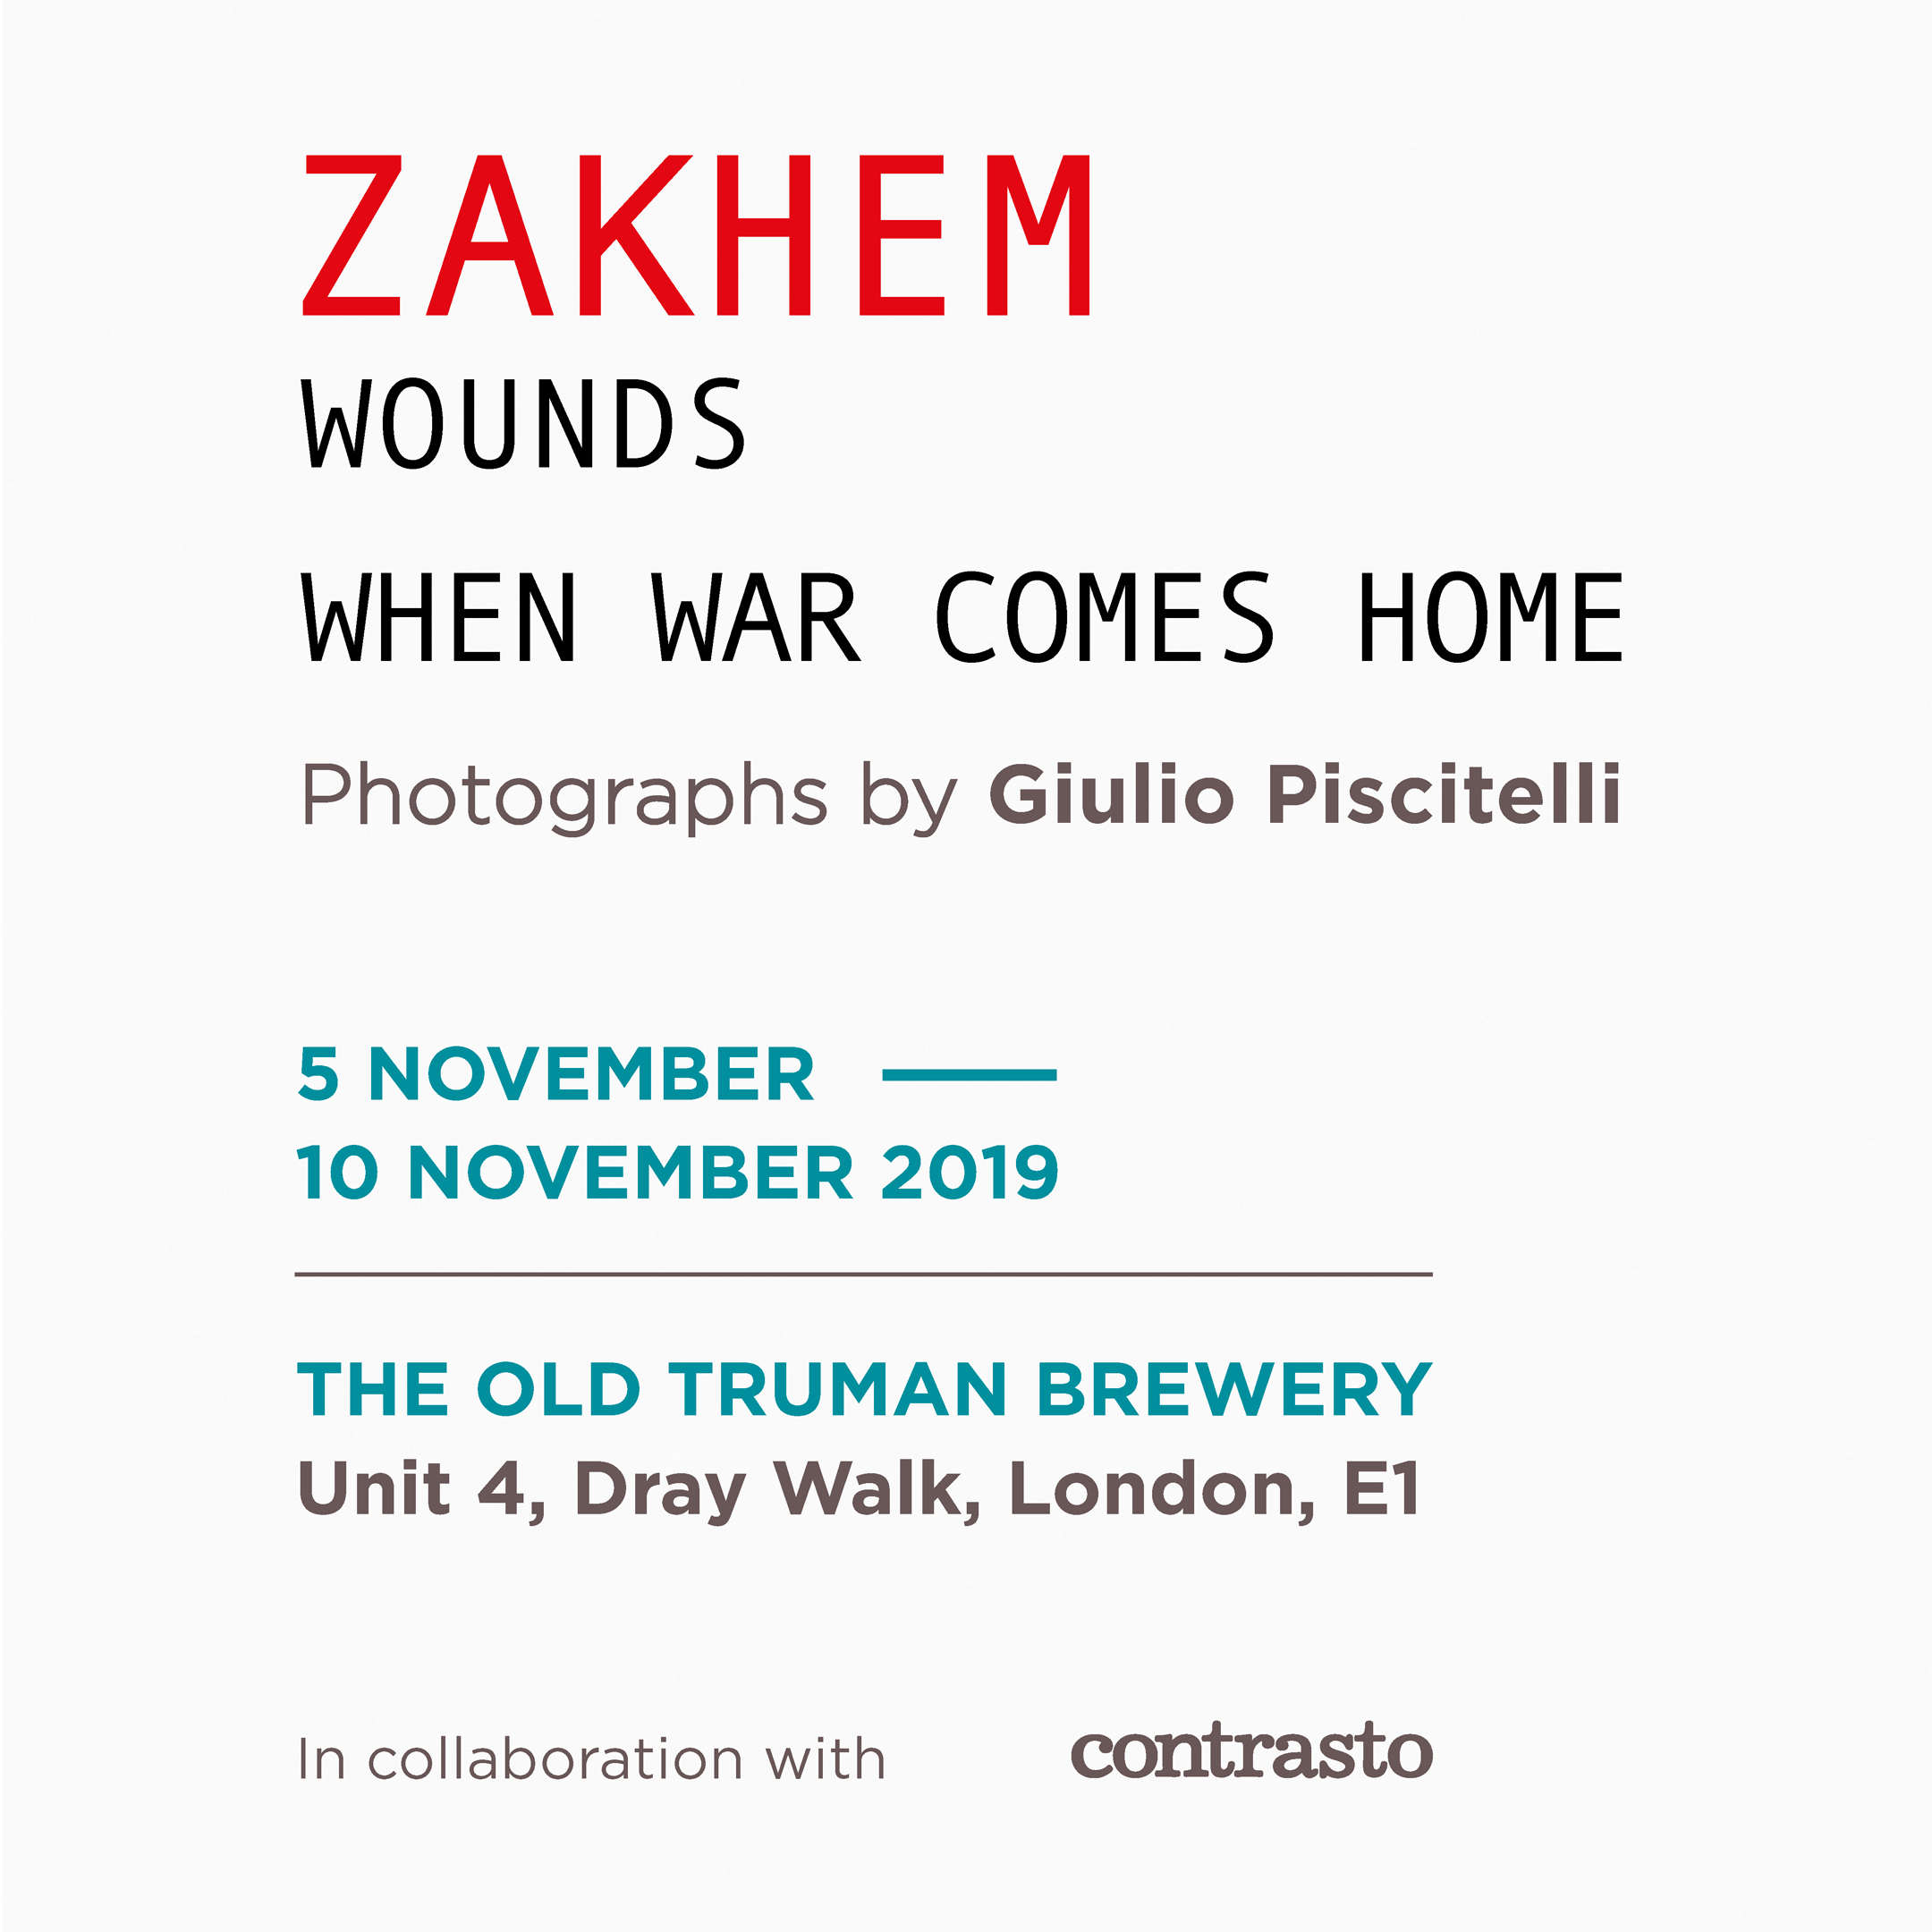 ZAKHEM | WOUNDS: WHERE HOME COMES HOME. A Photographic Exhibition By Giulio Piscitelli